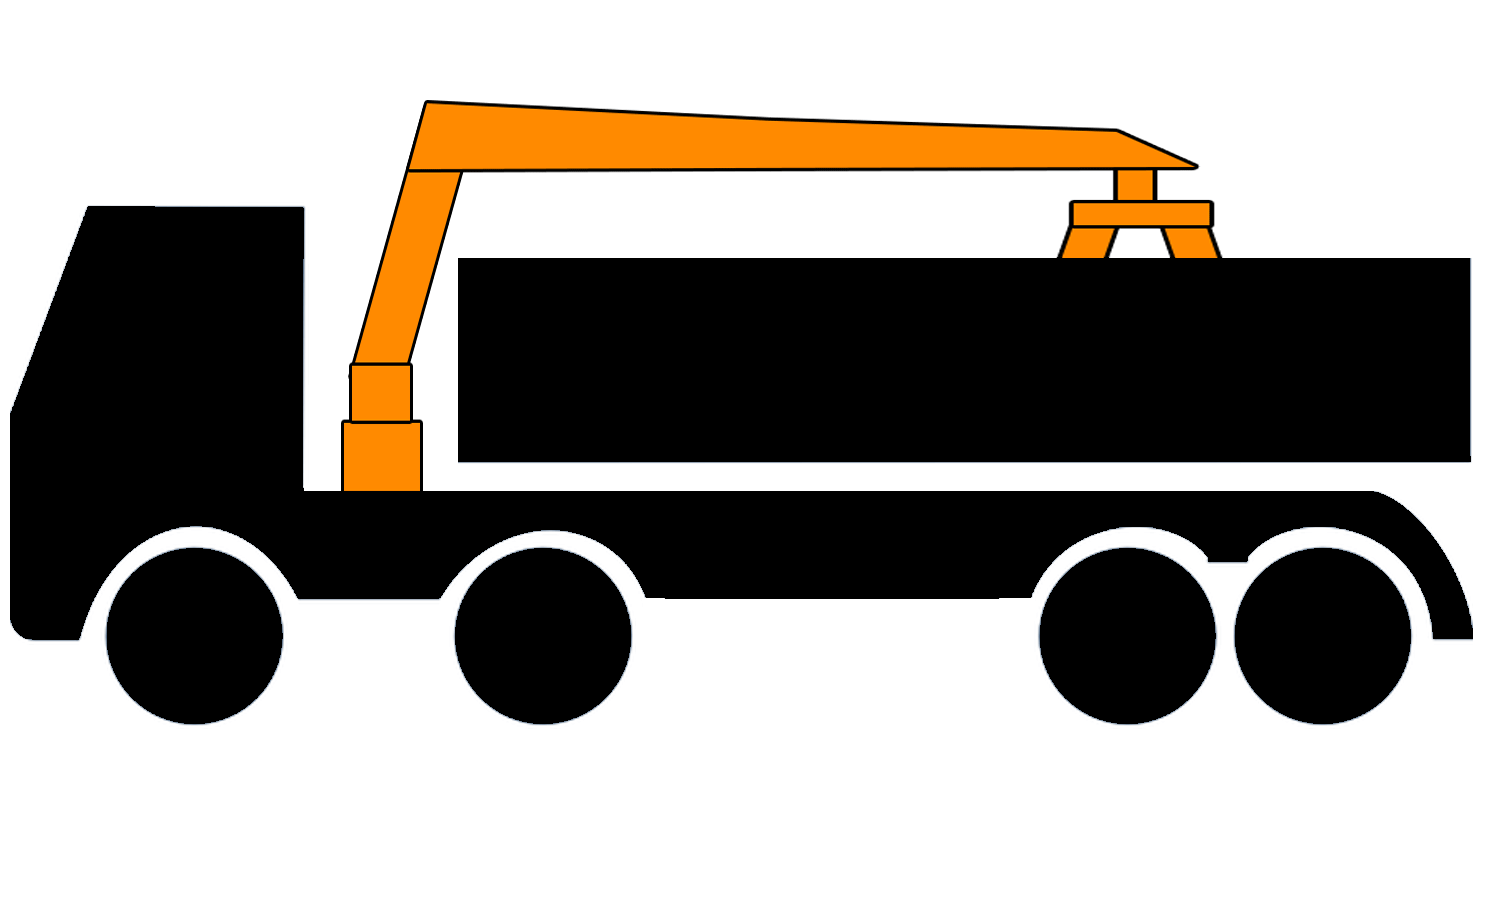 8 wheel grab lorry for hire in Birmingham